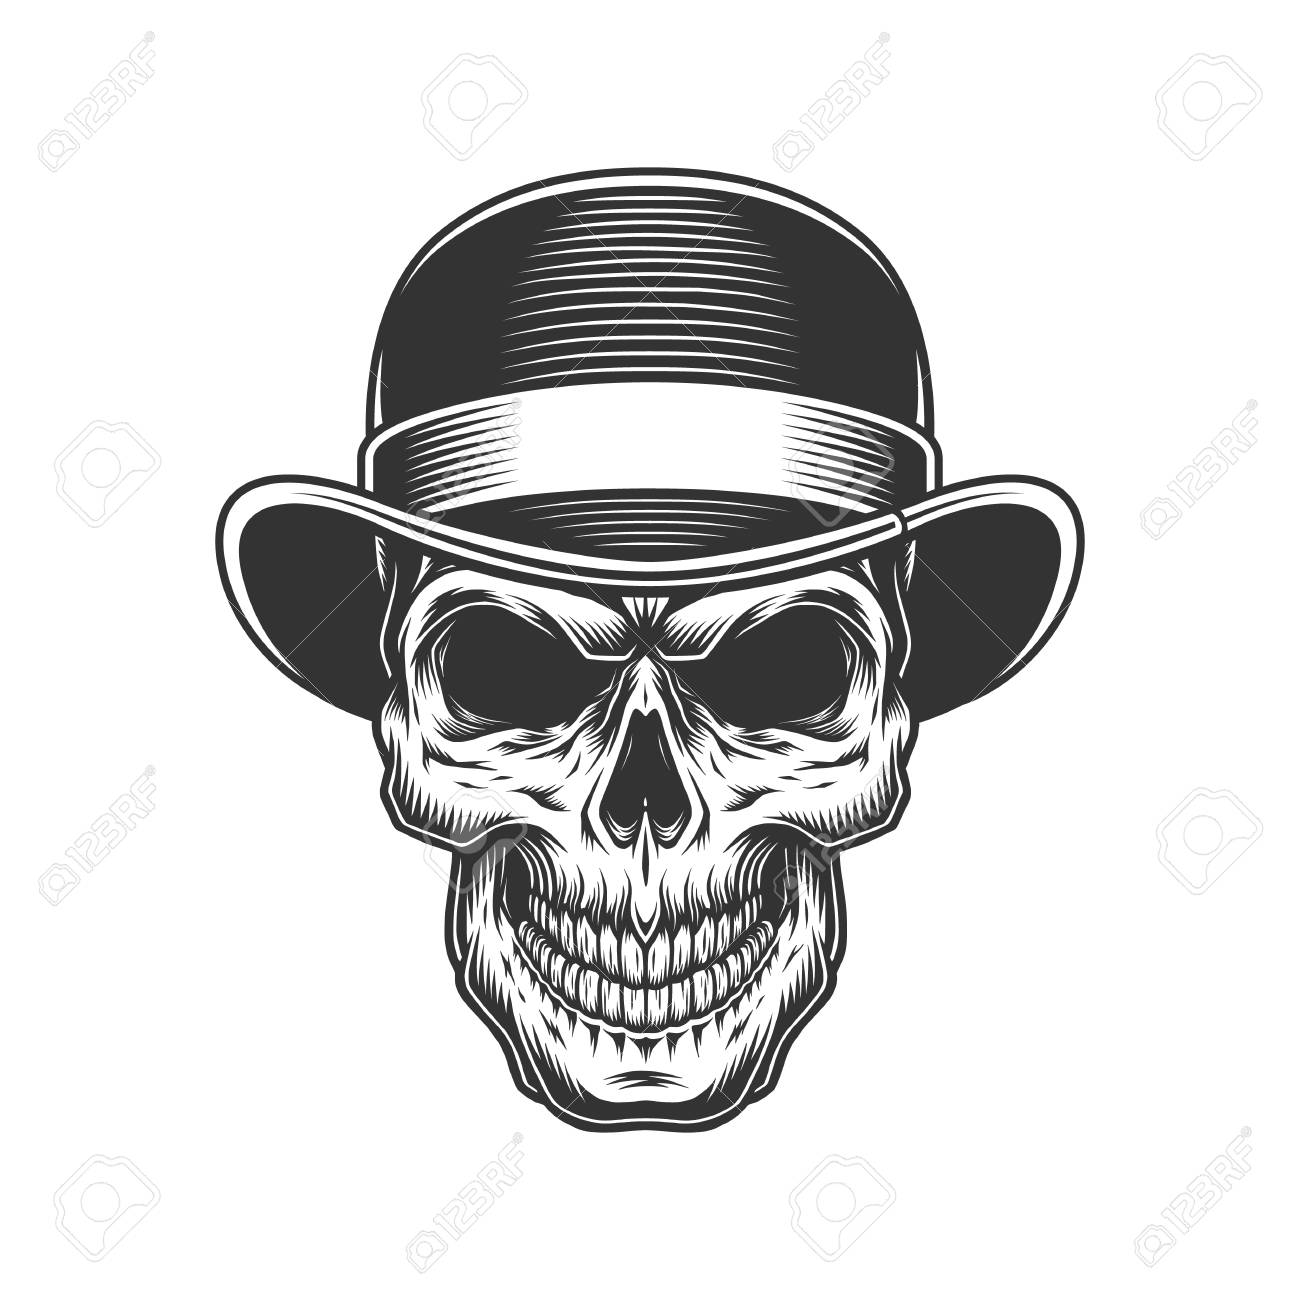 1fd05b9a98a28 skull in the bowler hat. Vector vintage illustration Stock Vector -  105163554